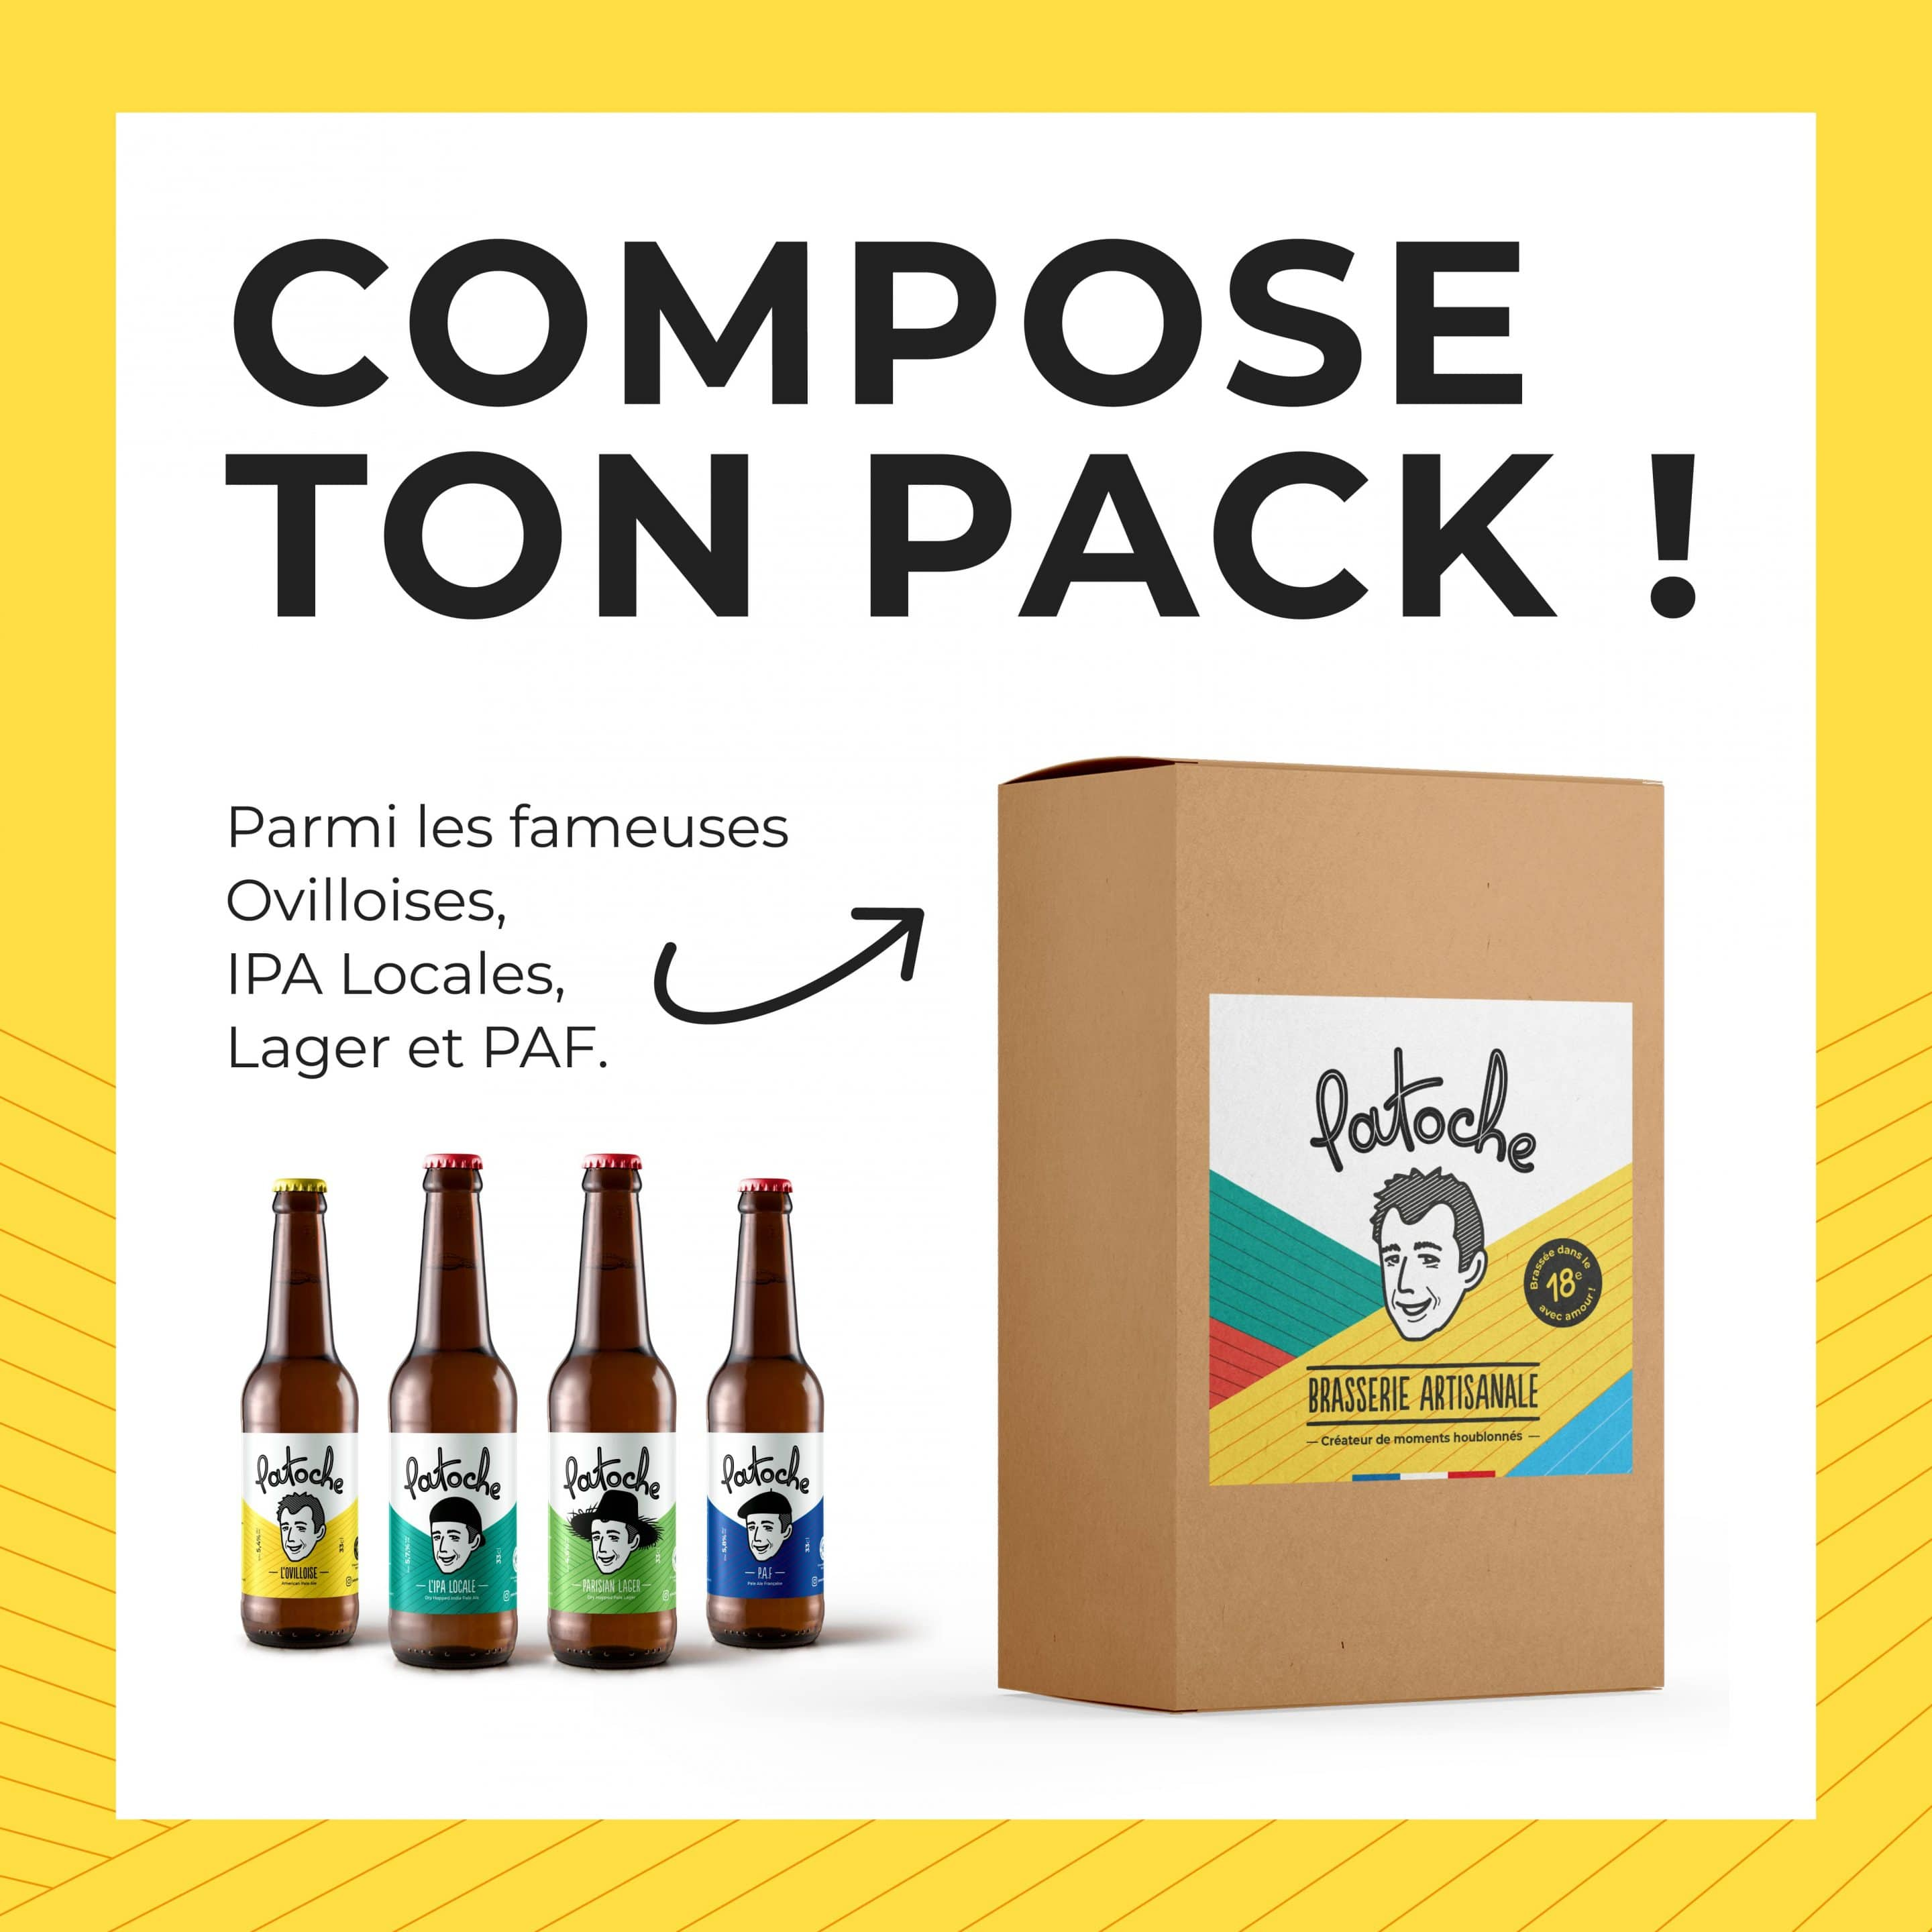 Compose ton pack